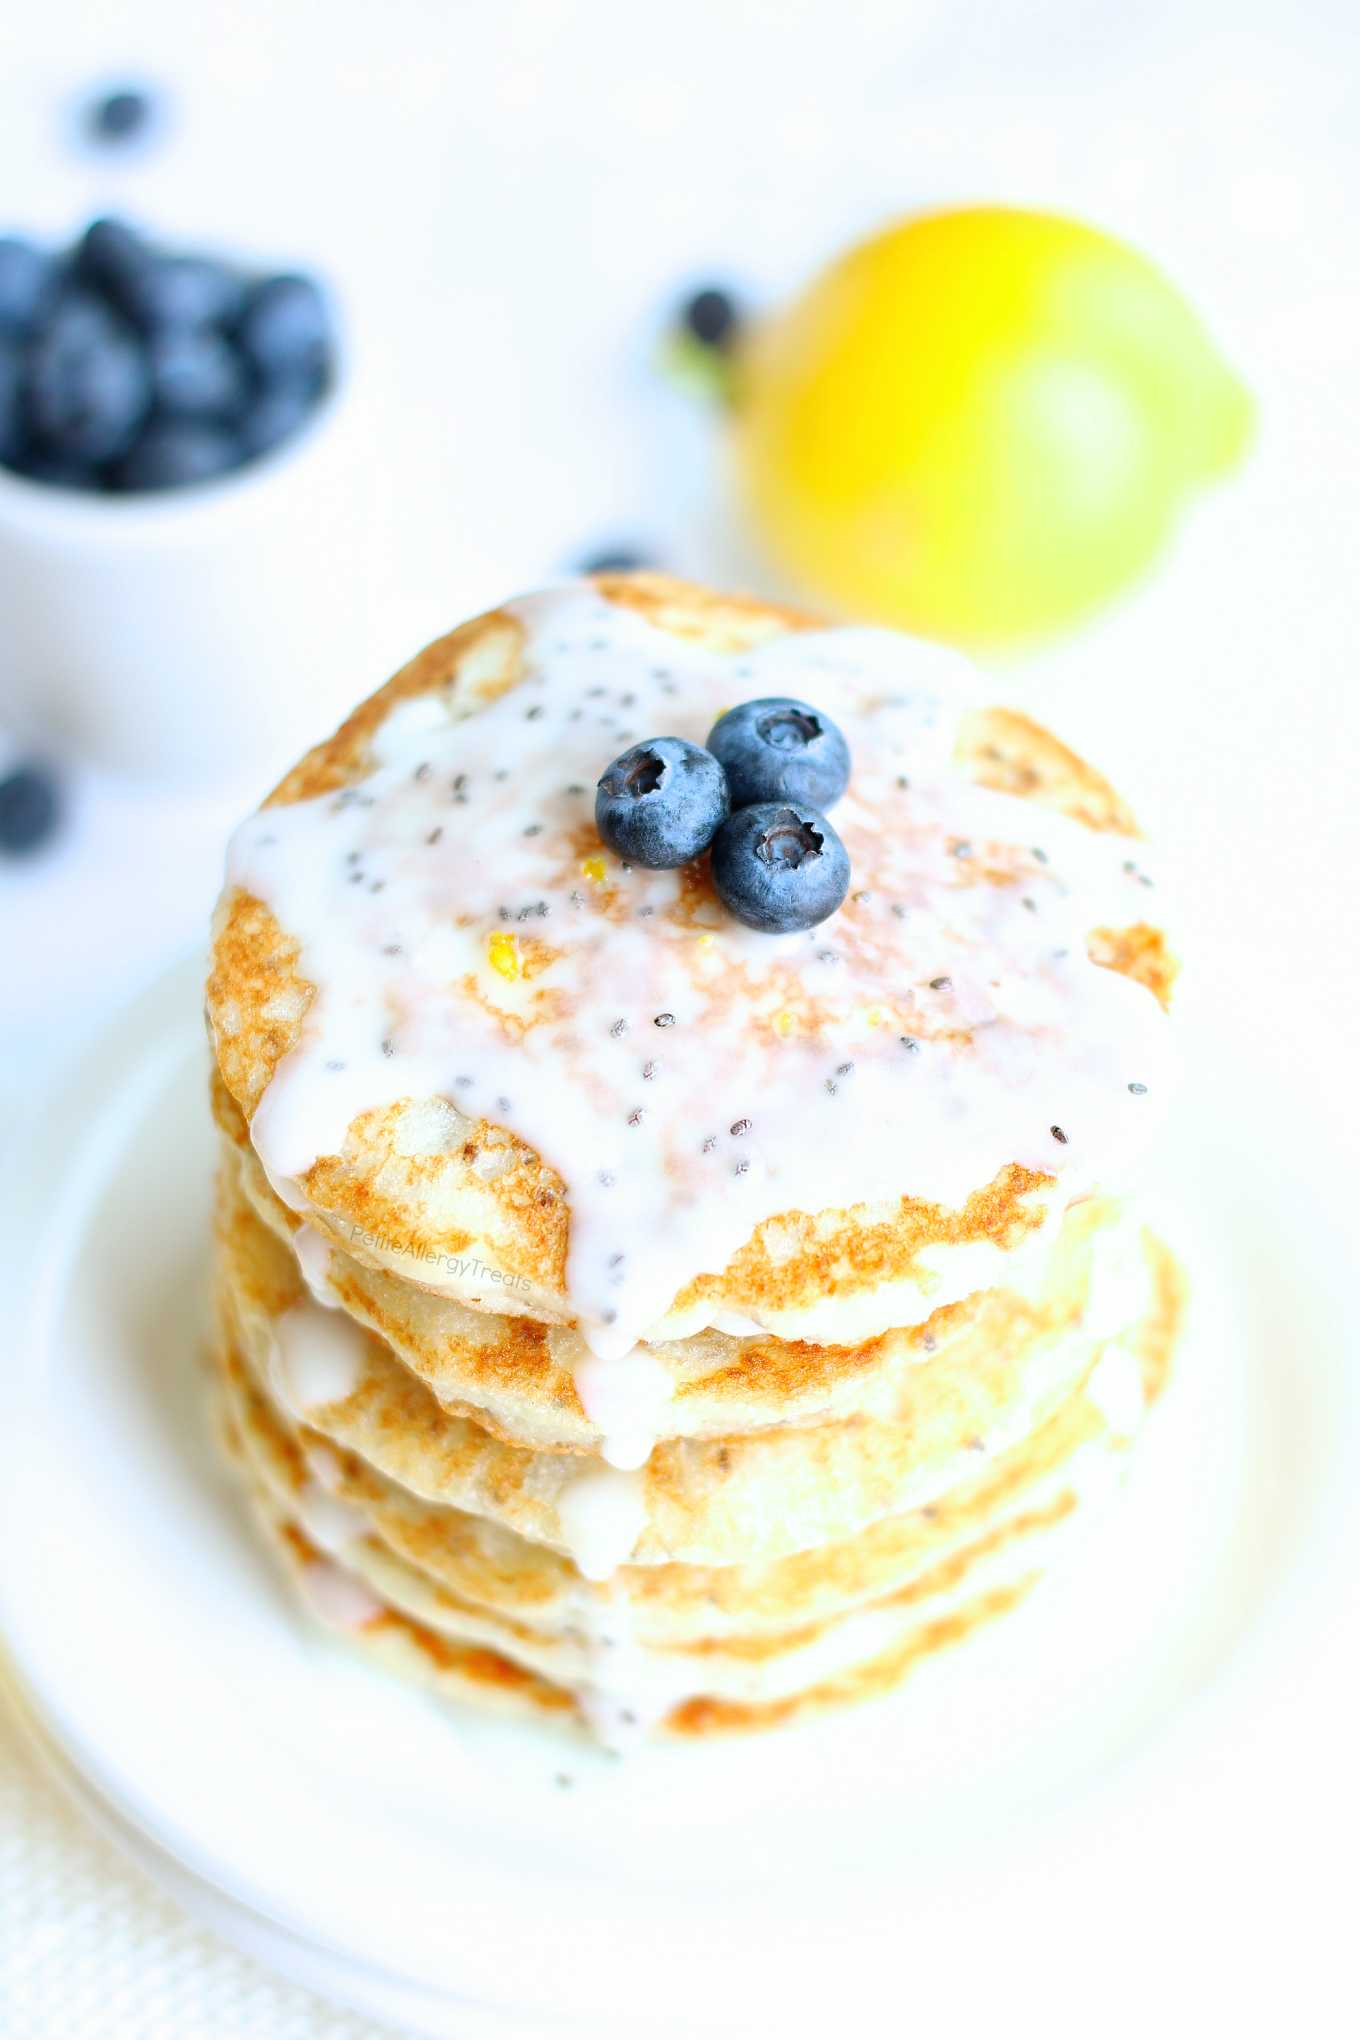 Lemon Chia Seed Pancakes (gluten free dairy free Vegan) recipe- Easy gluten free pancakes, like lemon poppy seed pancakes but better. Super food allergy friendly too-egg free, dairy free and nut free. #glutenfree #dairyfree #eggfree